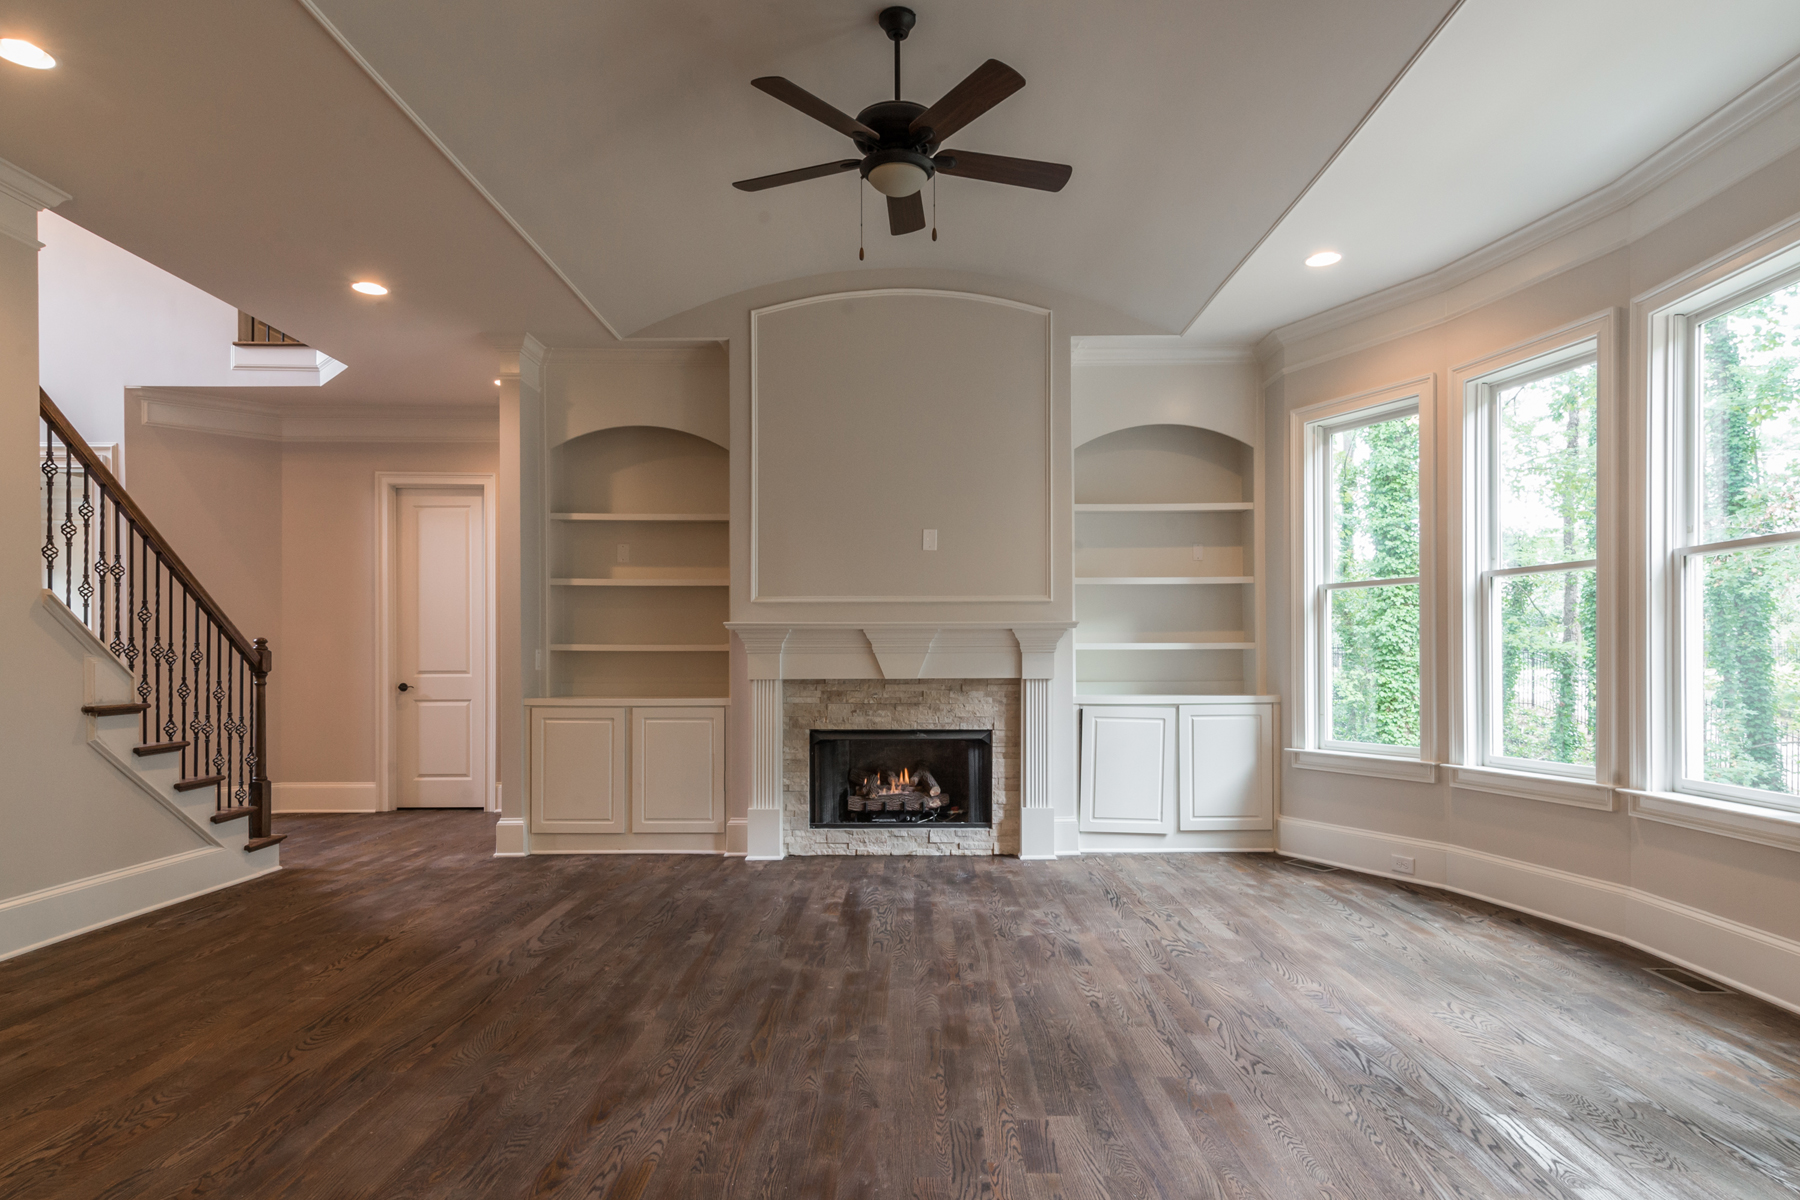 Additional photo for property listing at New Construction Home, Top Rated Schools 1781 Greystone Court Marietta, Georgia 30068 Estados Unidos